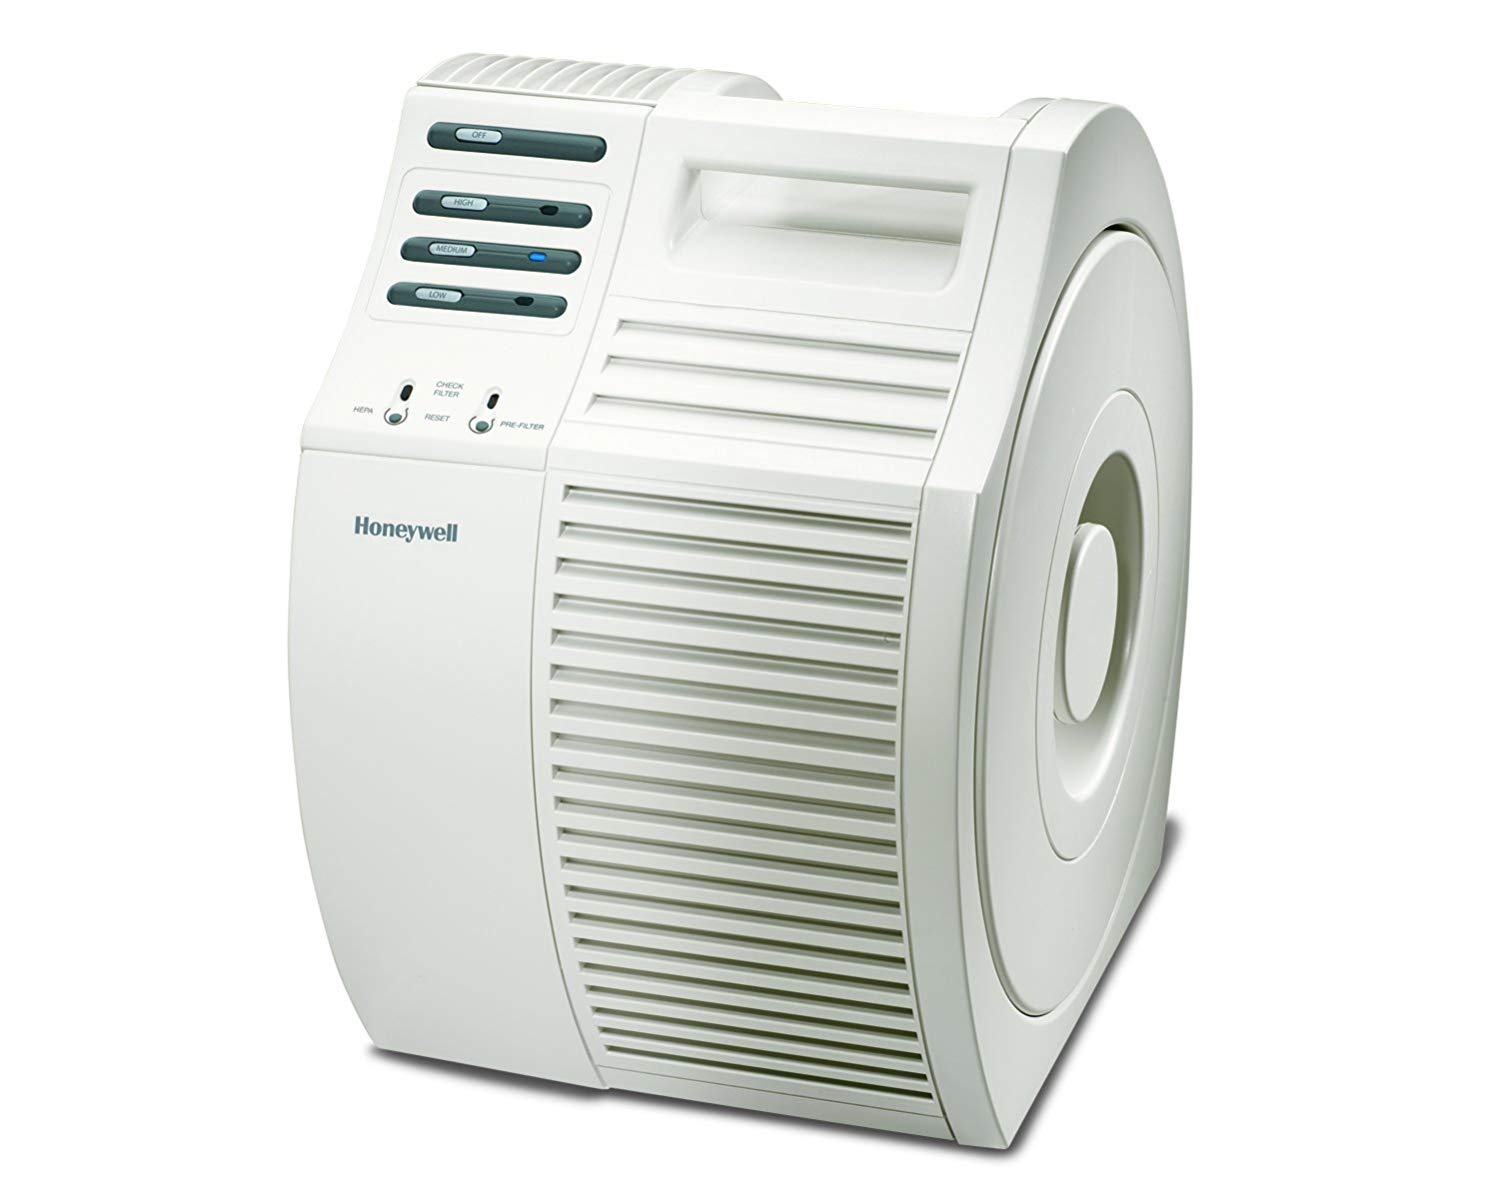 17000-S honeywell air purifier